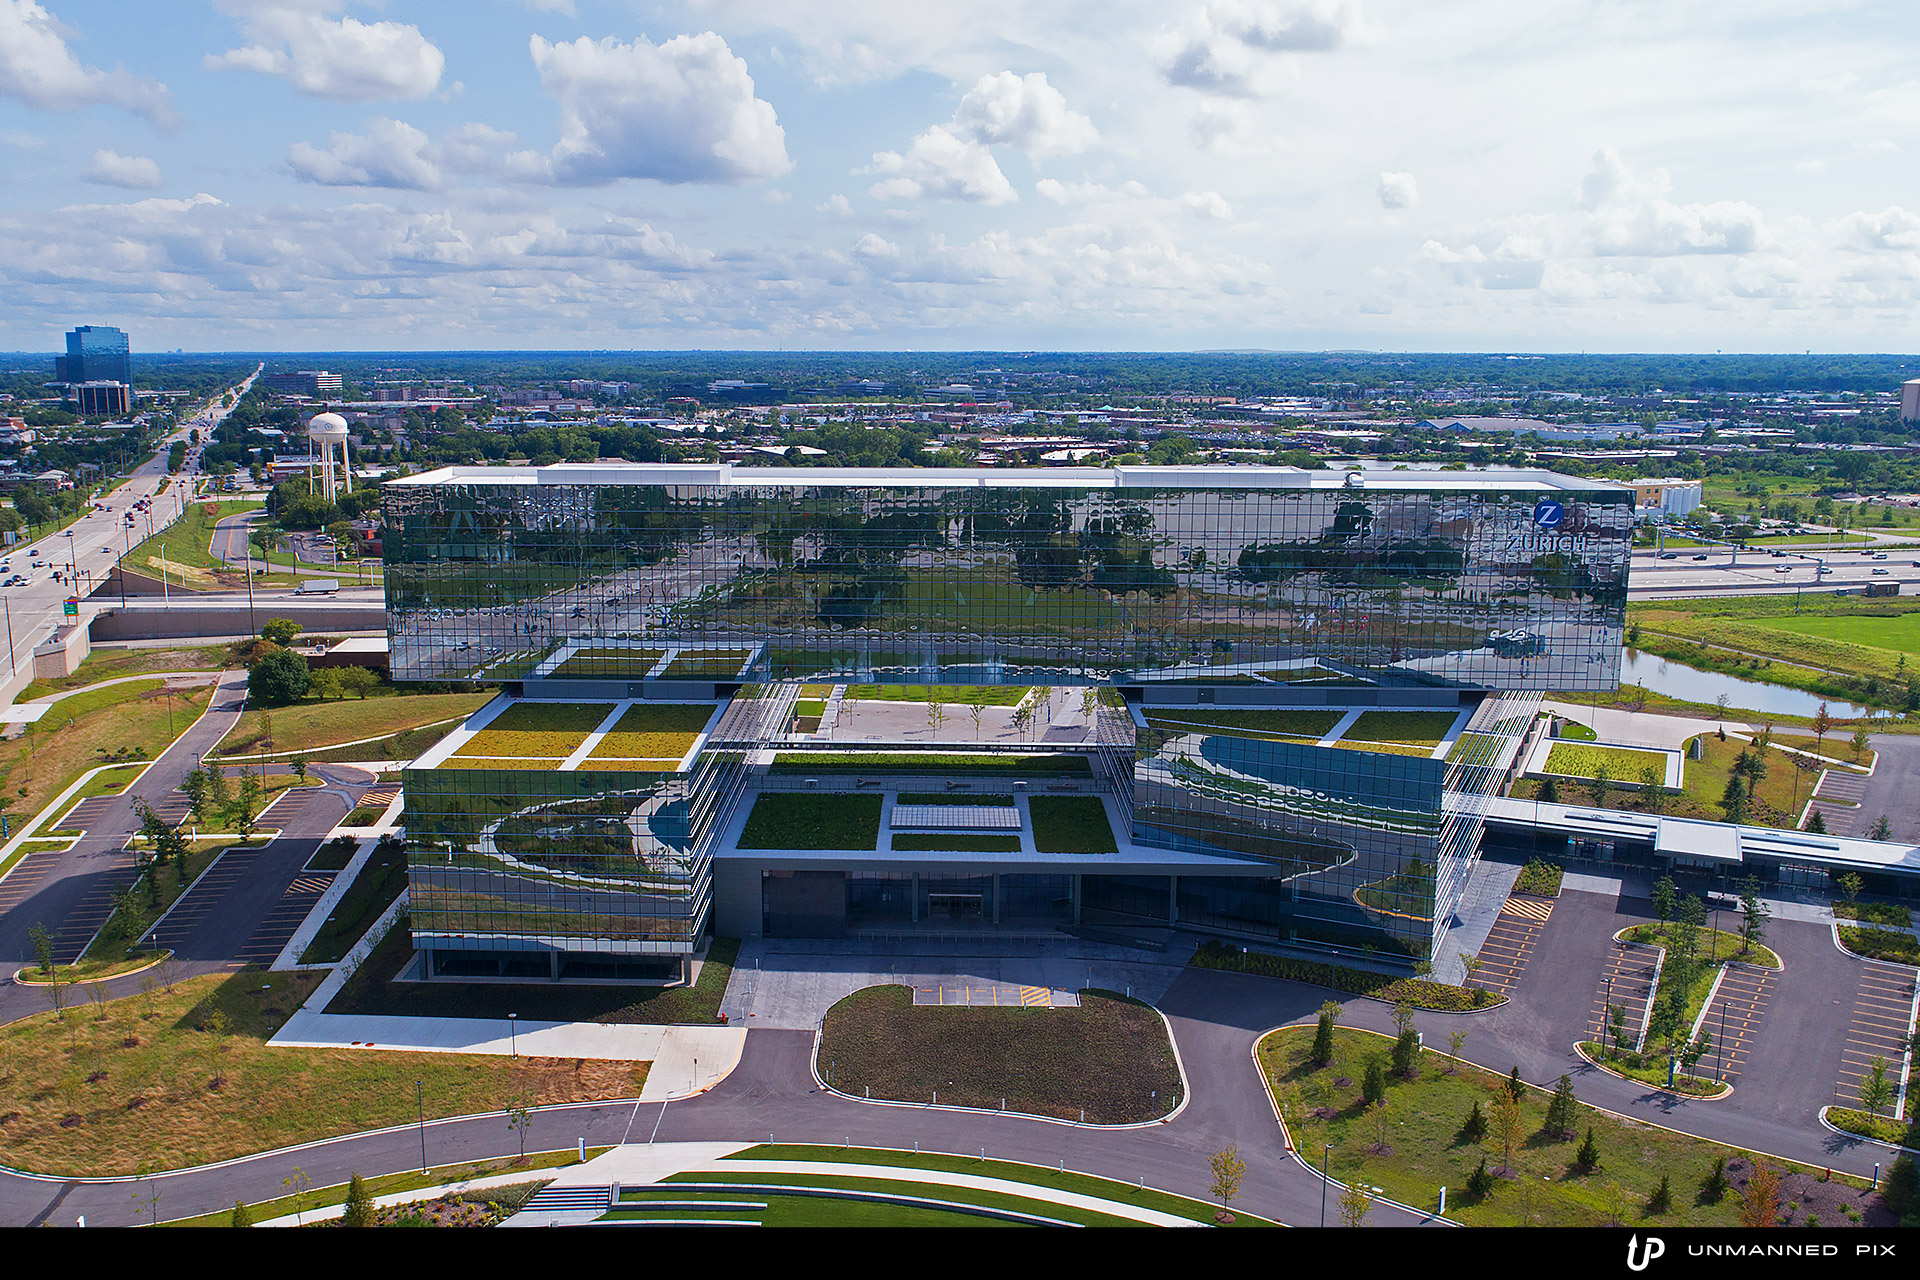 aerial view of the zurich north america headquarters, facing south west, photographed by jacob rosenfeld for unmannedpix.com